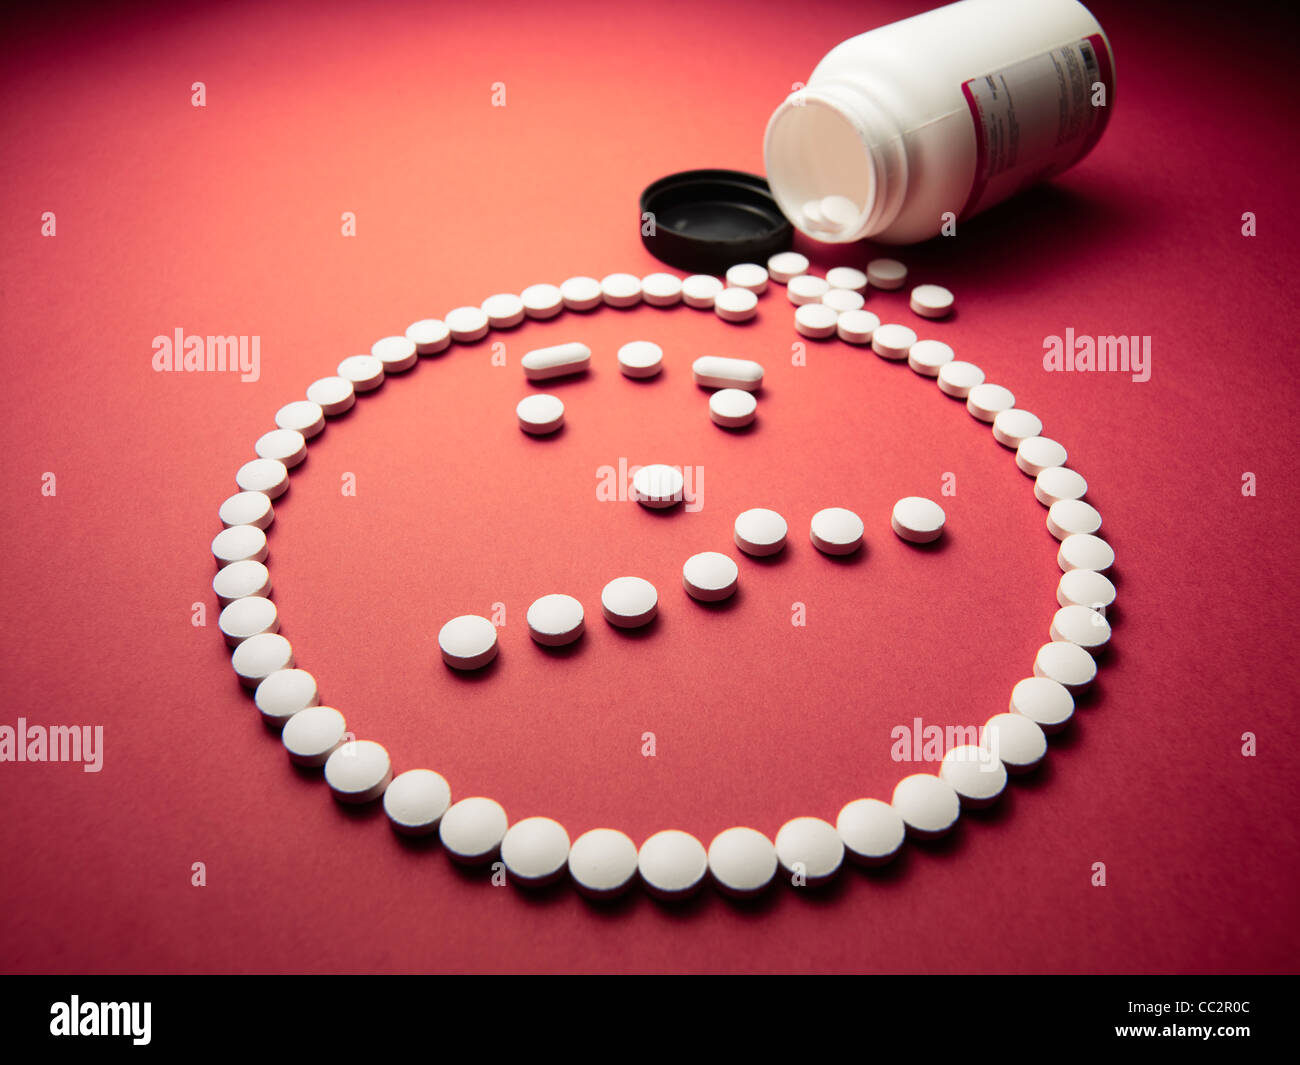 angry face made out of pills and drugs coming out of a bottle - Stock Image